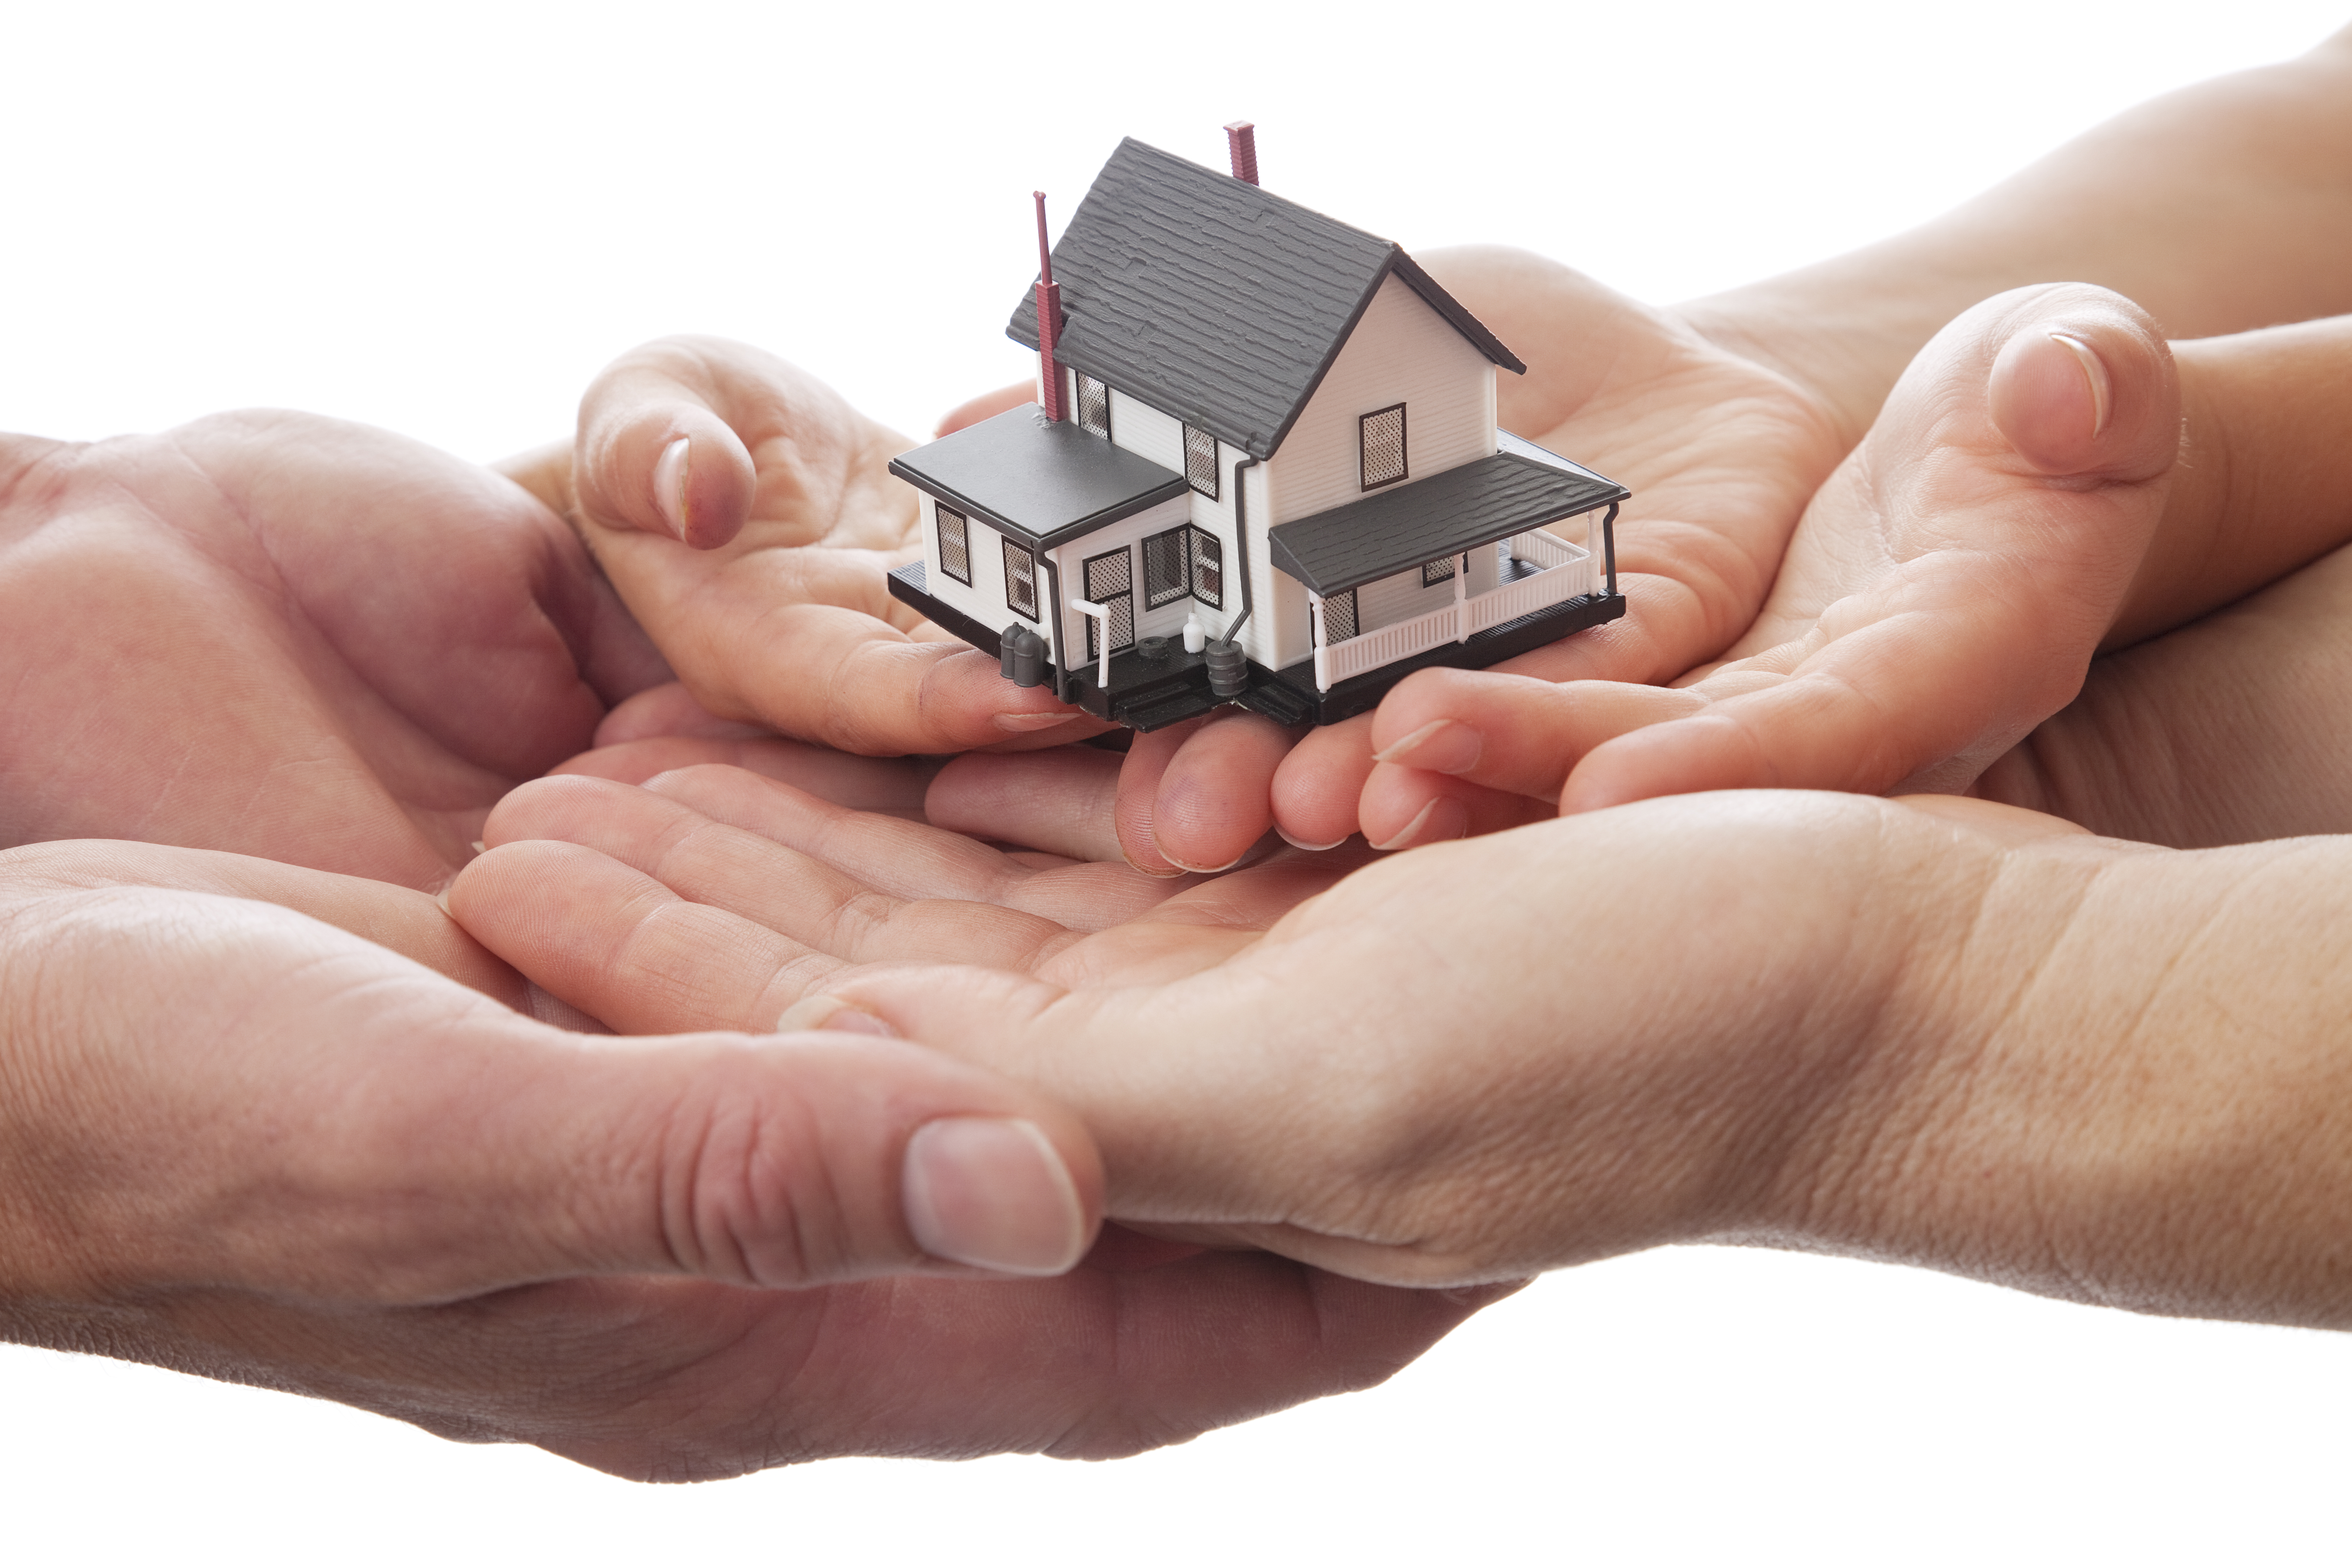 Generations of home ownership